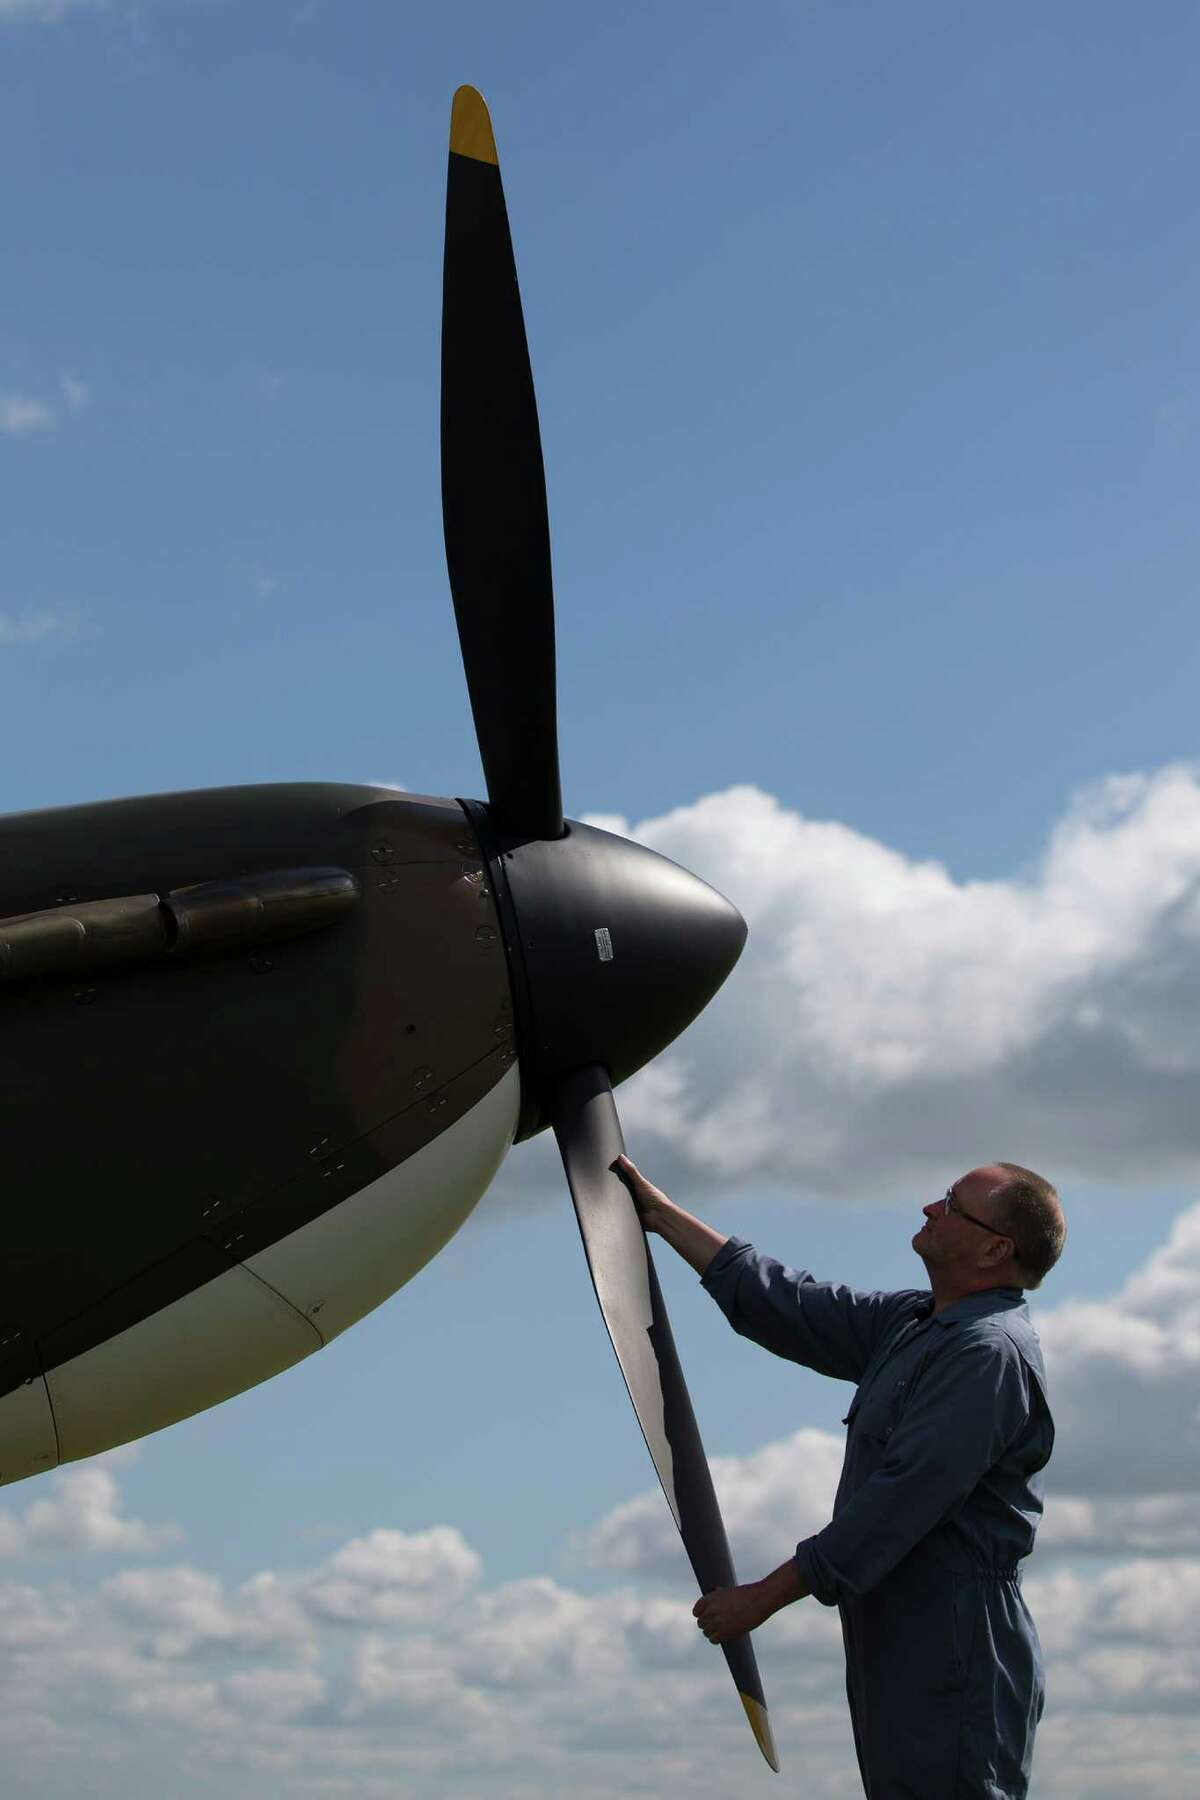 A technician poses for a photograph with the propeller of a restored Vickers Supermarine Spitfire Mk.1A on April 27, 2015 at Imperial War Museum Duxford in Cambridge, England. The Spitfire, one of the last of its kind remaining, is due to be auctioned for charity on 9 July 2015 and is expected to fetch between 1.5 - 2.5 million GBP (2.25 - 3.8 million USD)Go here for details of the auction.